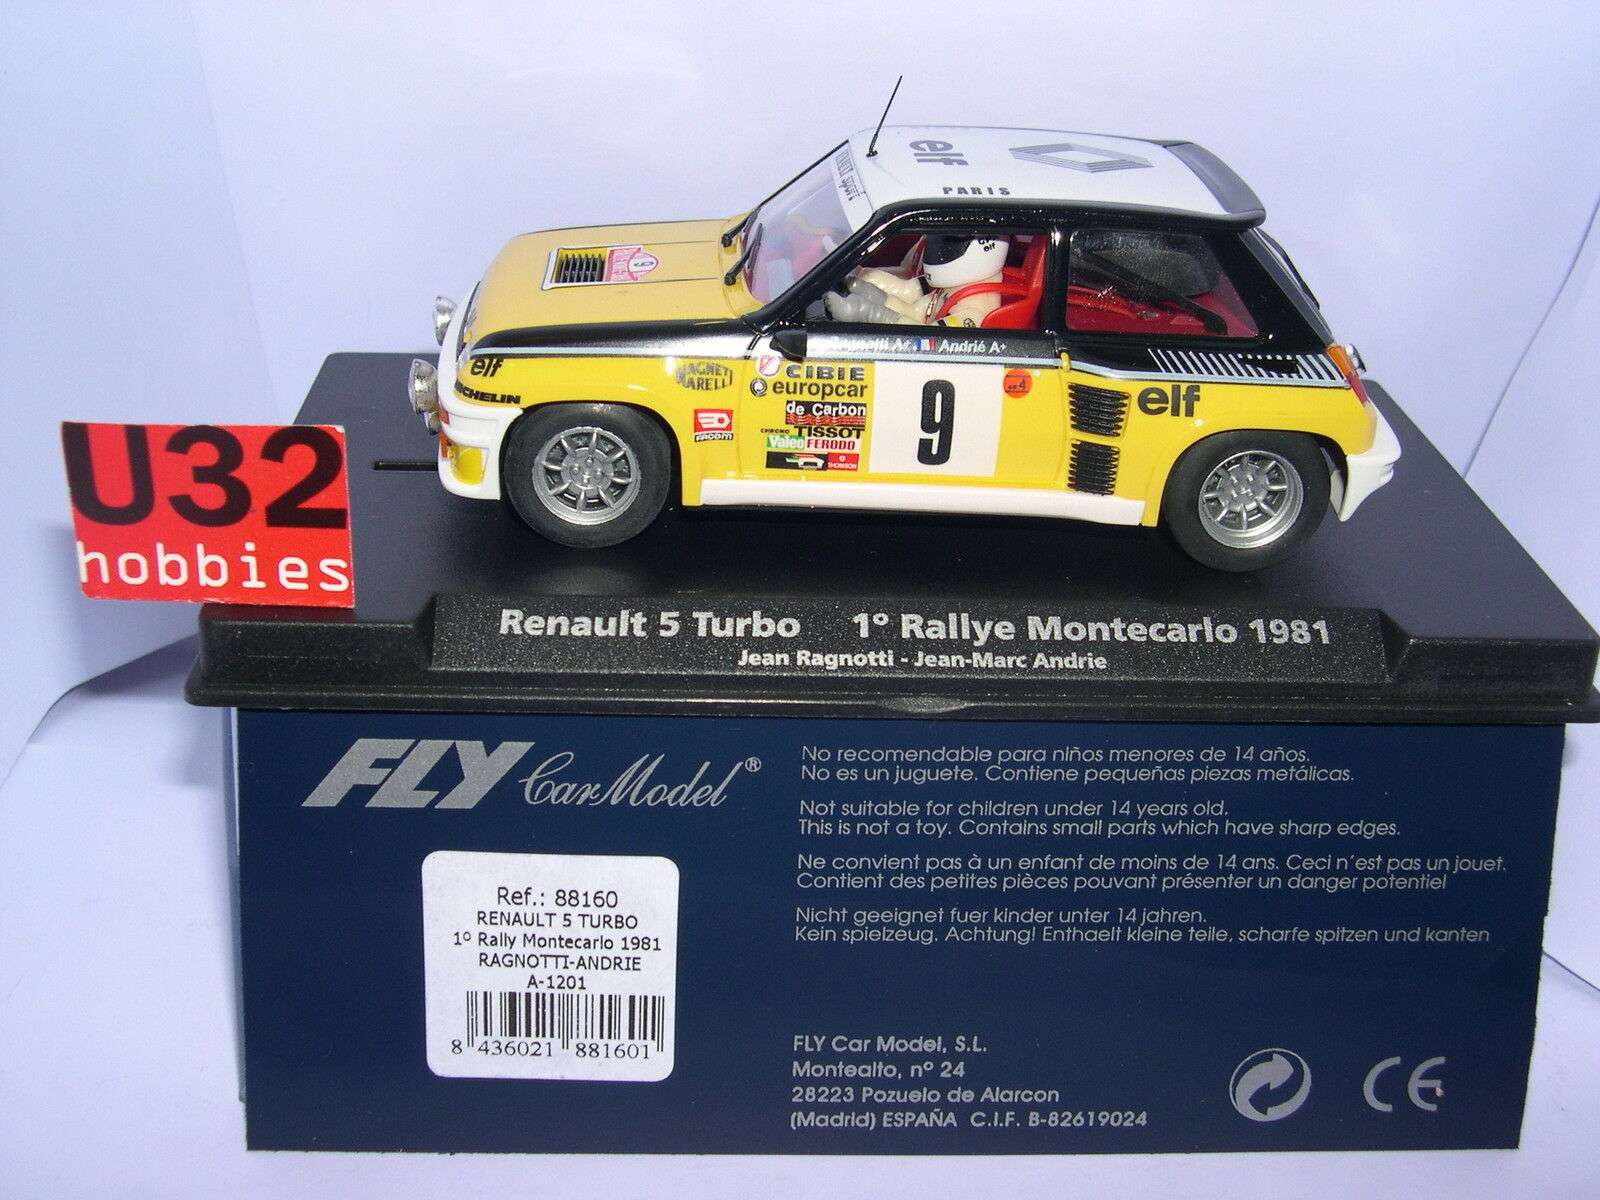 FLY 88160 A-1201 RENAULT 5 TURBO ºRALLY MONTE CARLO '81 RAGNOTTI ANDRIE MB